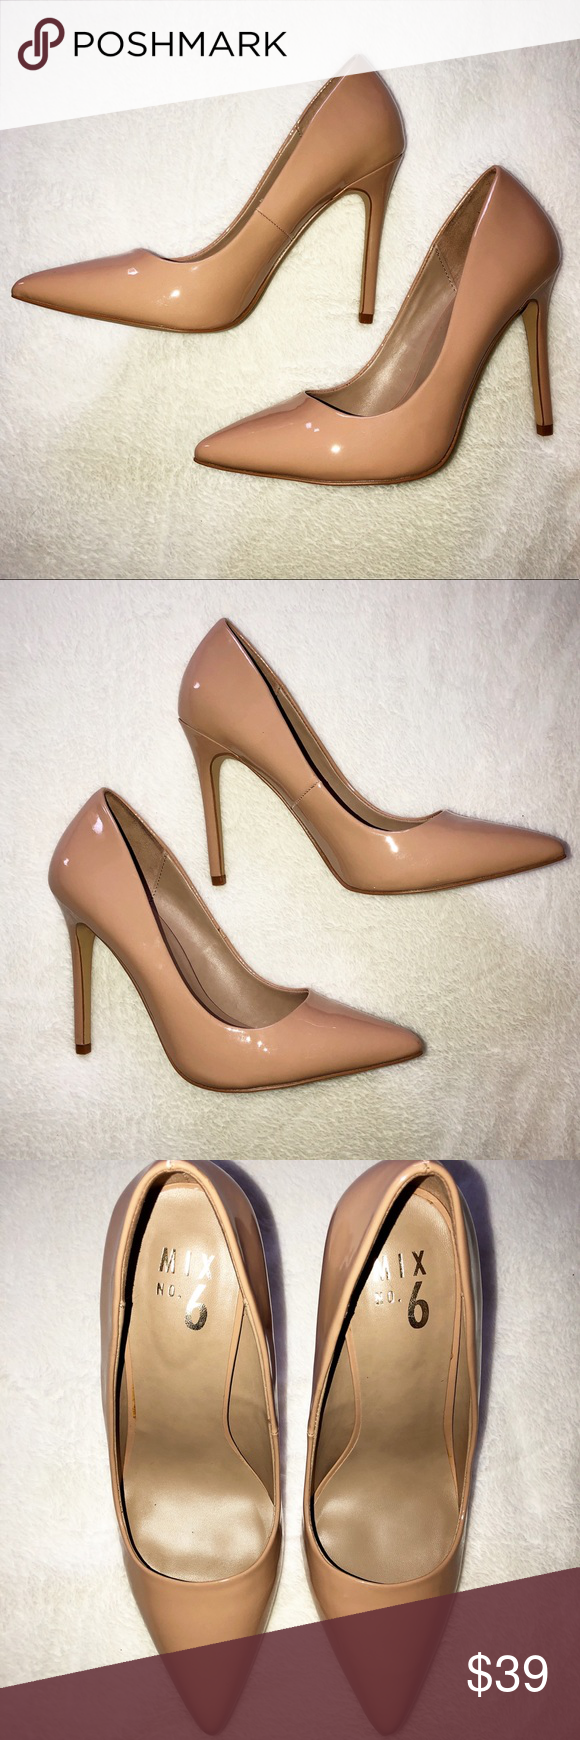 8eab140a29 NEW IN BOX MIX NO. 6 DIGNITY BEIGE PUMPS Add a simple yet chic accent